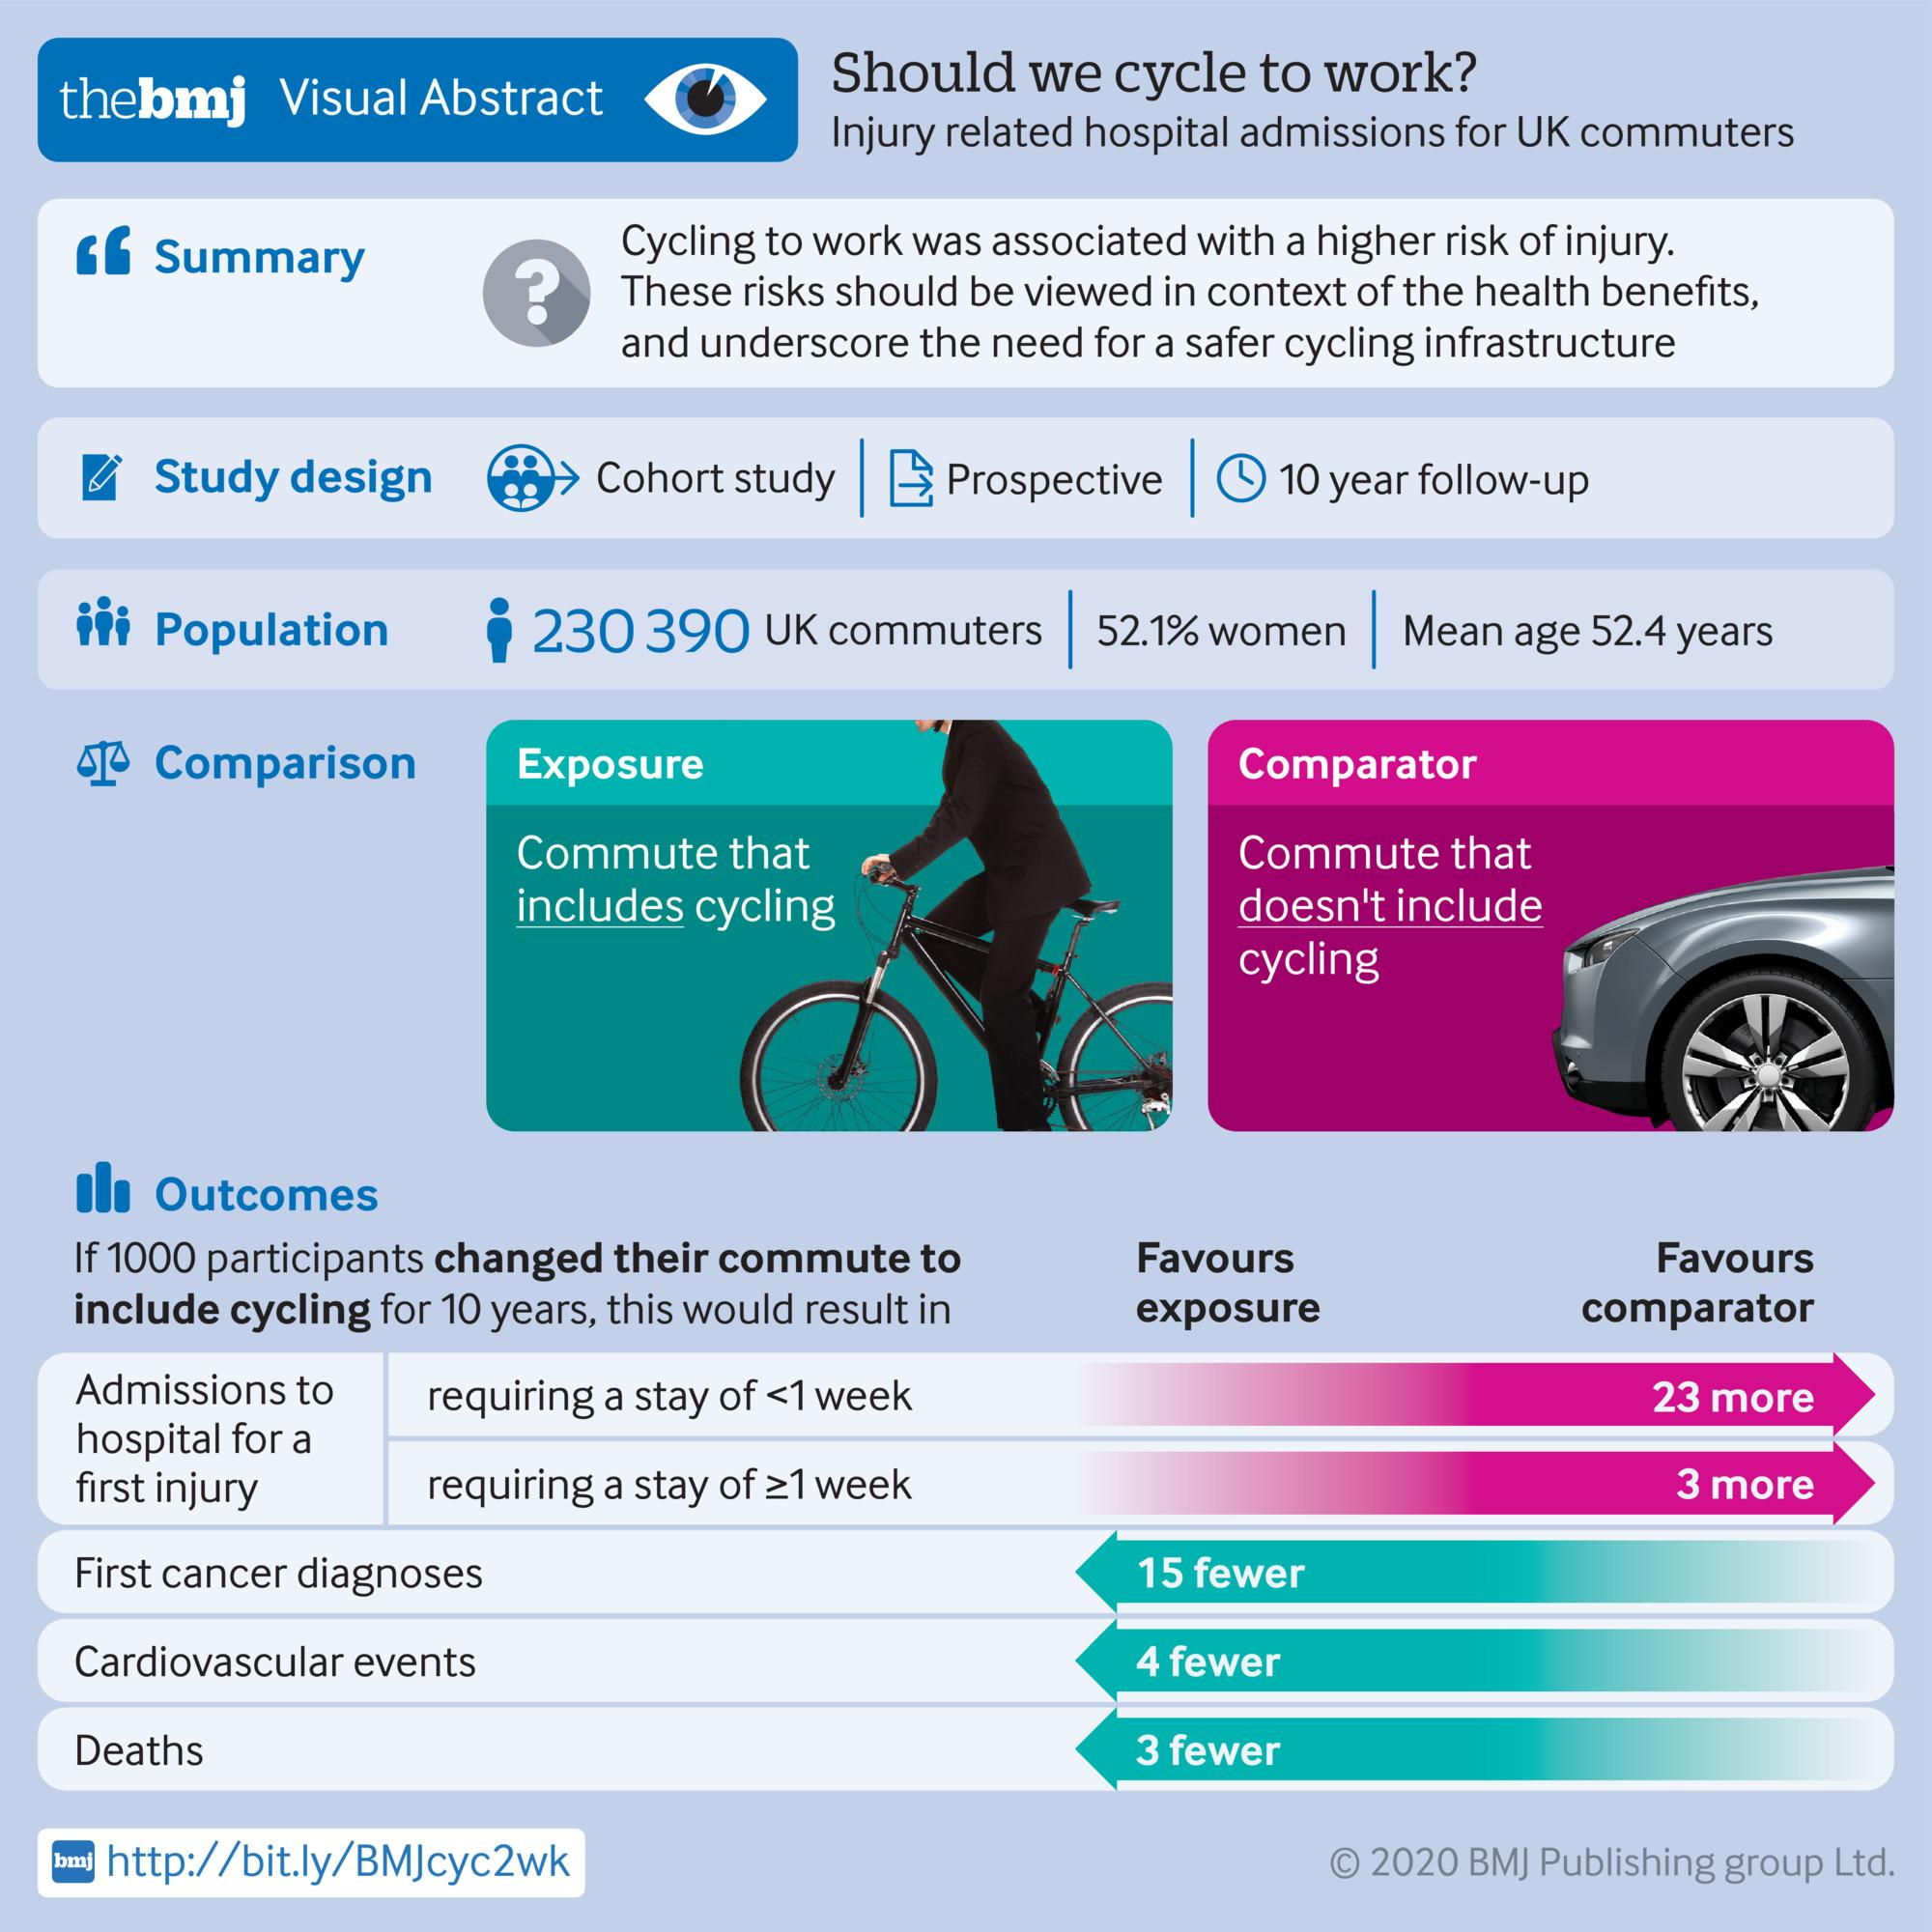 Should we cycle to work? Injury related hospital admissions for UK commuters